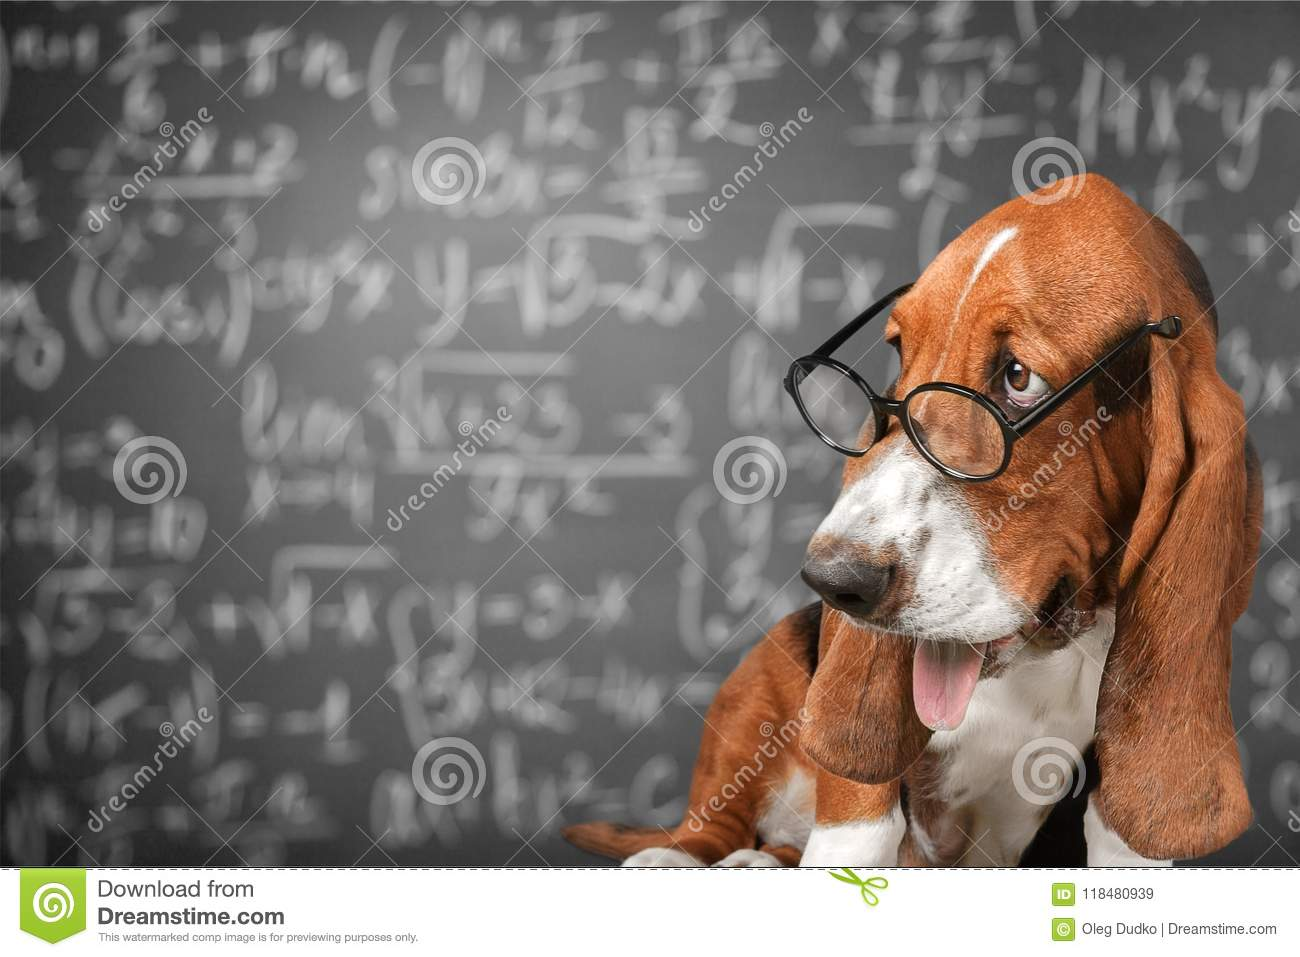 Download Math stock image. Image of genial, funny, academic, glasses - 118480939